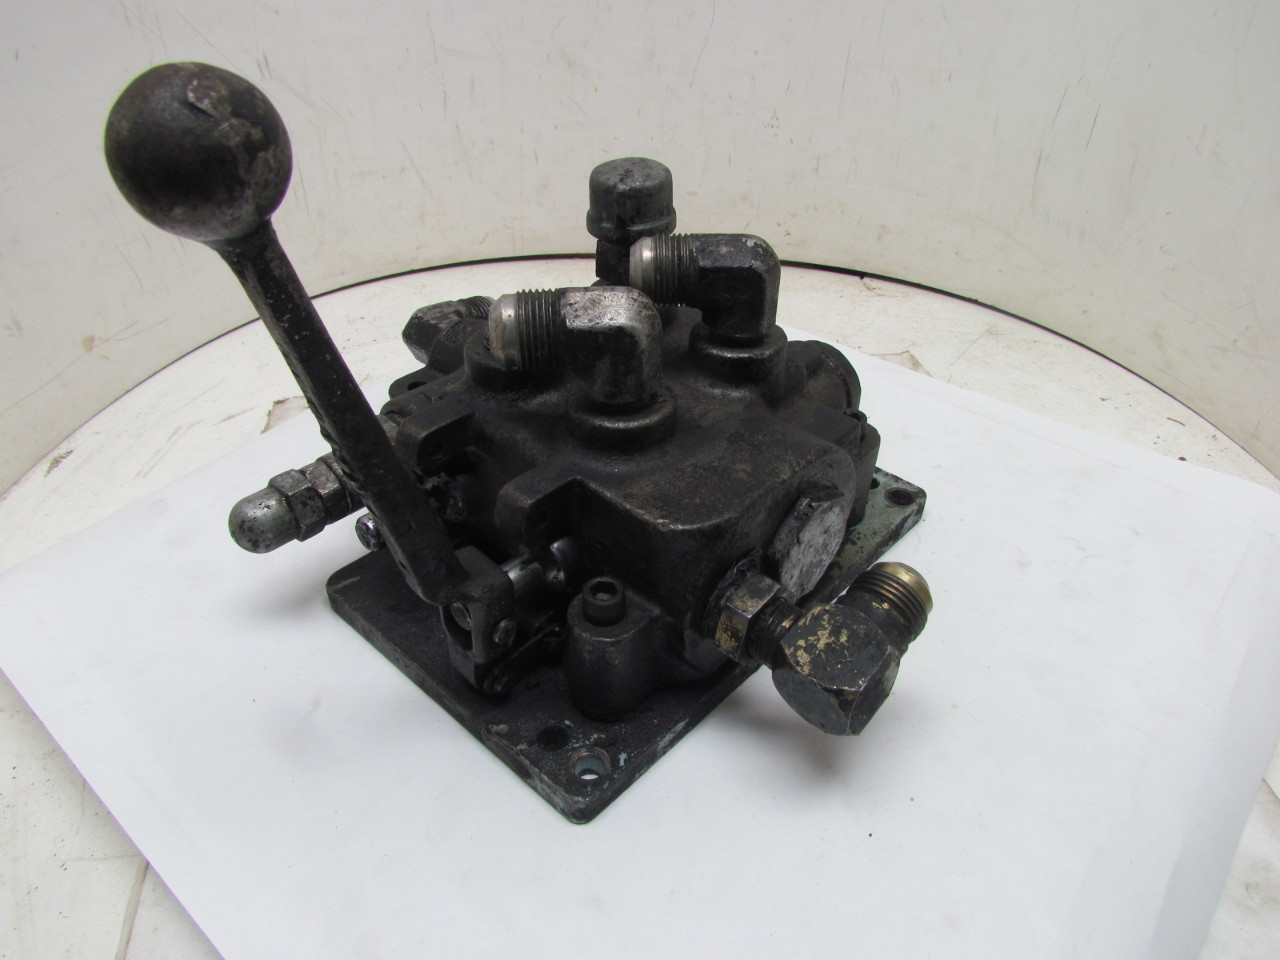 Gresen Hydraulic Valve Lever : Gresen double spool manual lever operated hydraulic